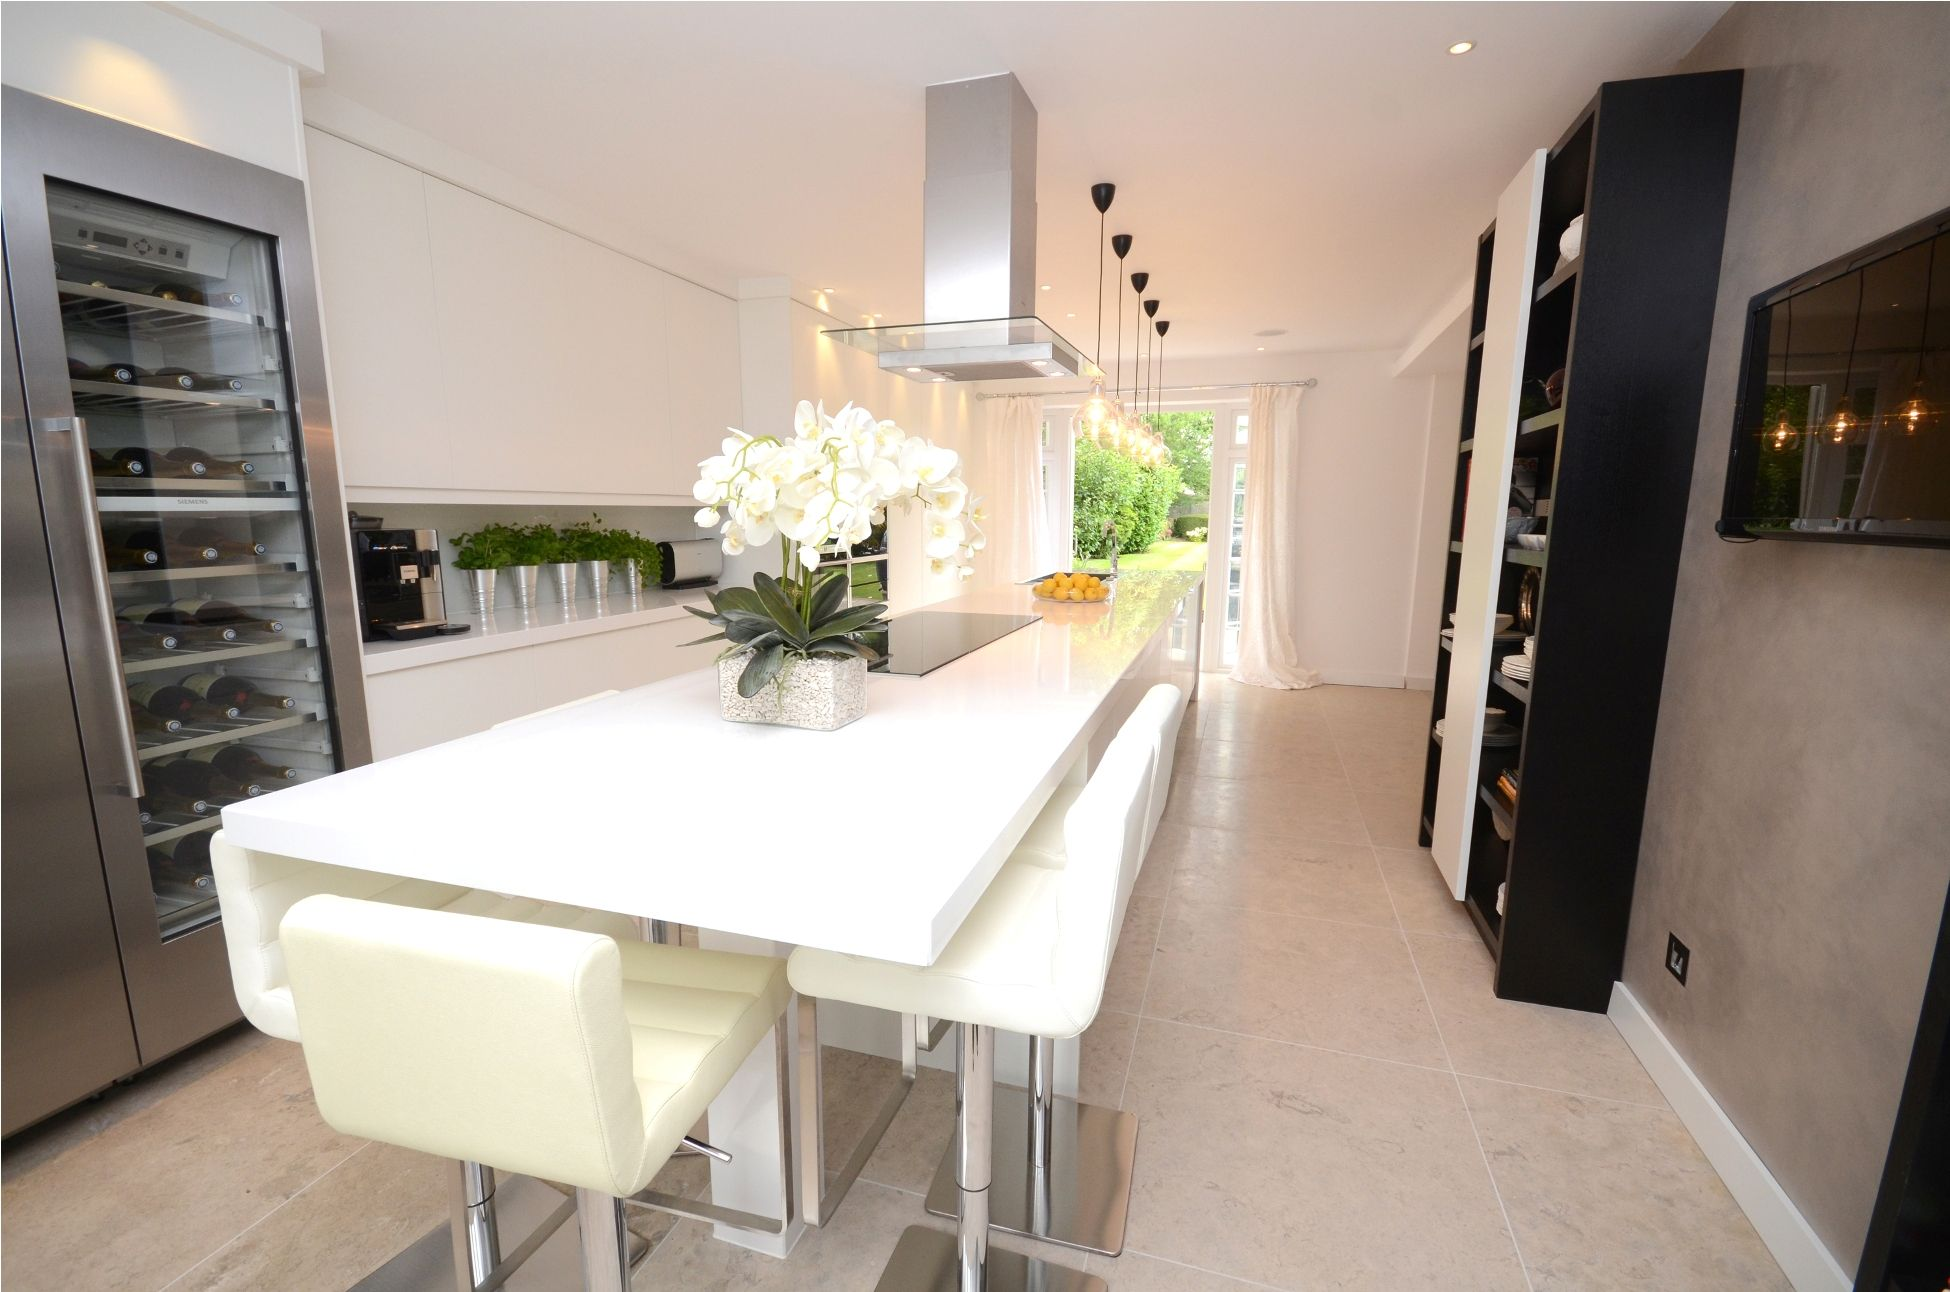 Good Kelly Hoppen 5m Long Island Bench Featured On Superior Interiors